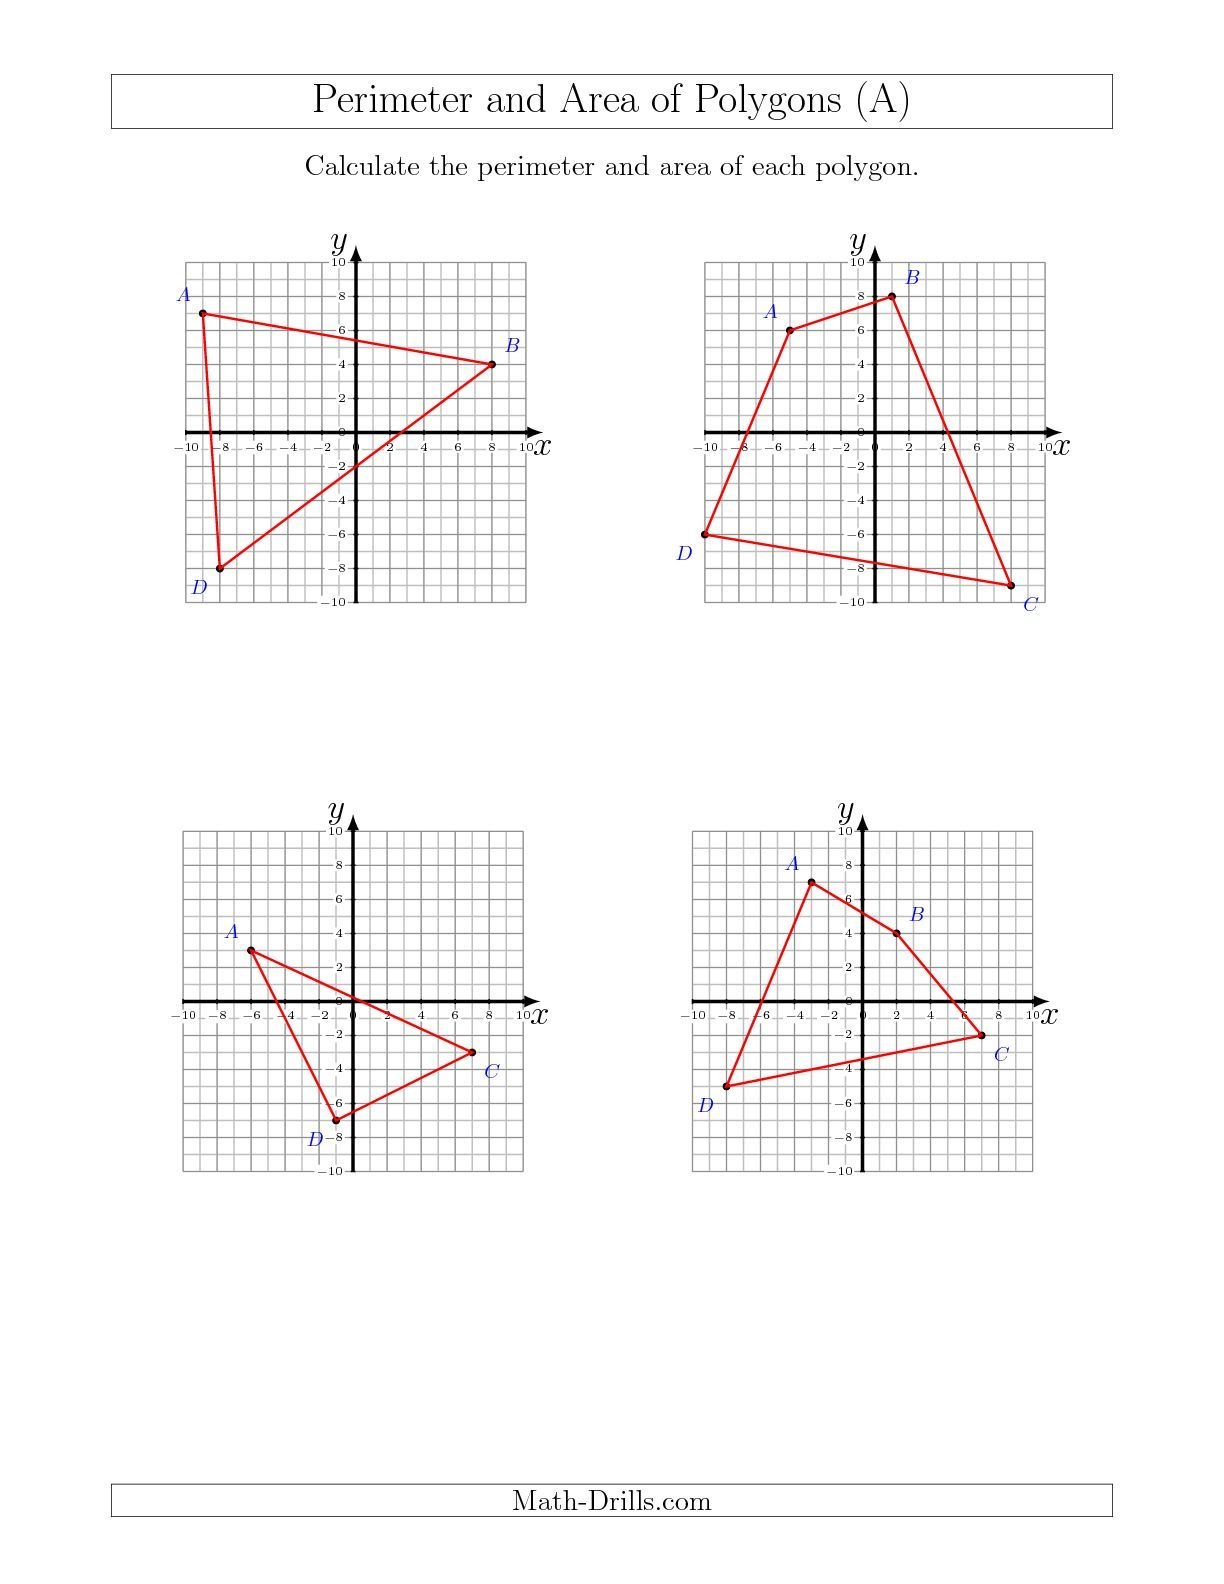 Worksheets Coordinate Planes Worksheets perimeter and area of polygons on coordinate planes a math worksheet freemath